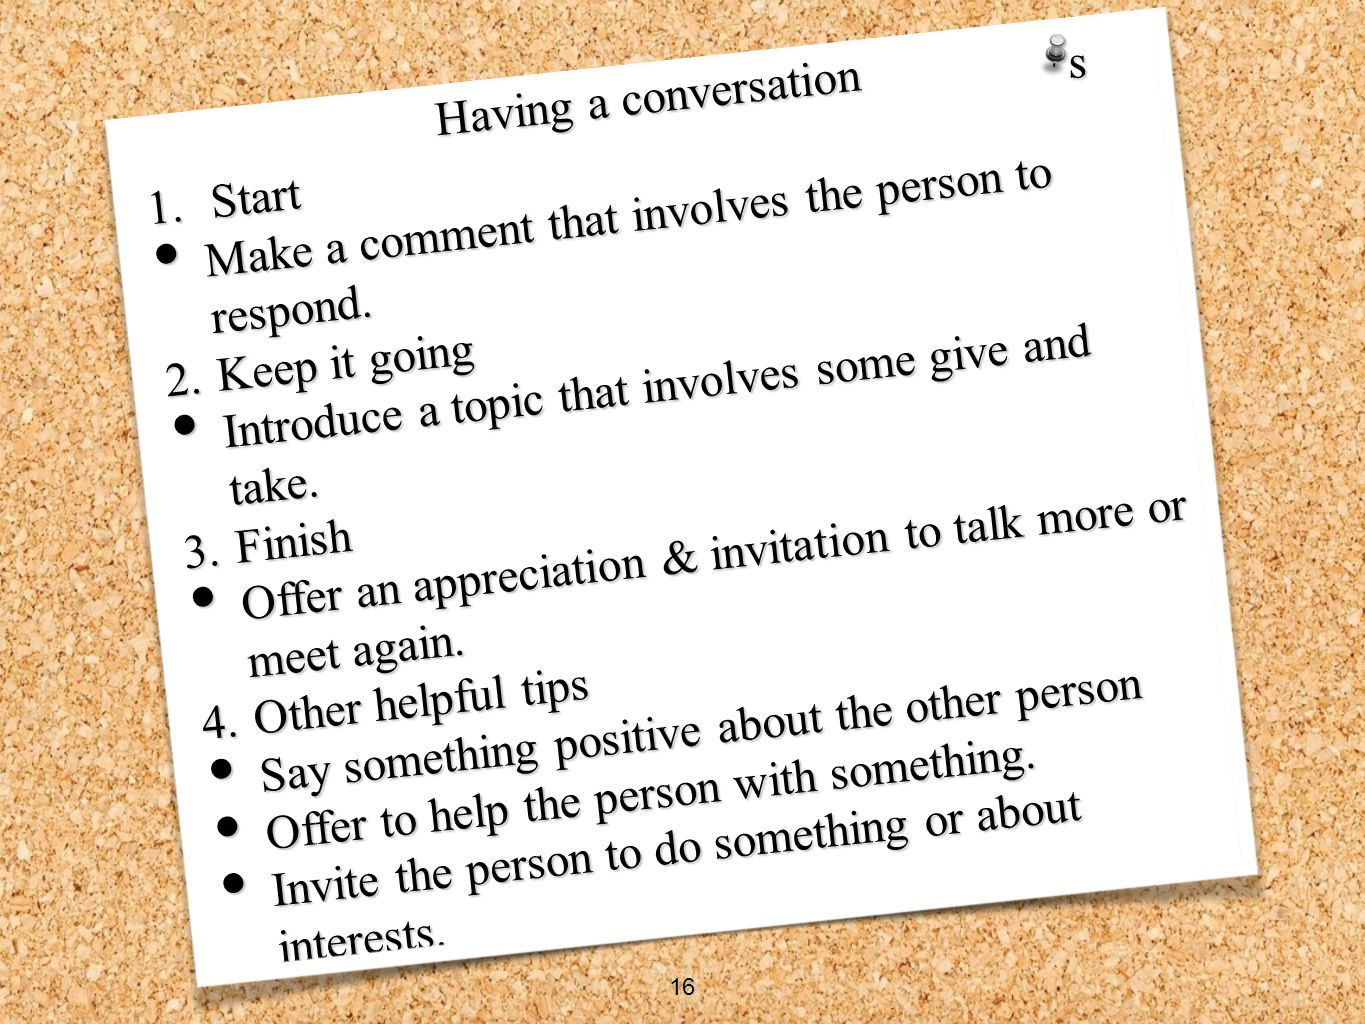 Having a conversation 1. Start Make a comment that involves the person to respond. Make a comment that involves the person to respond. 2.Keep it going